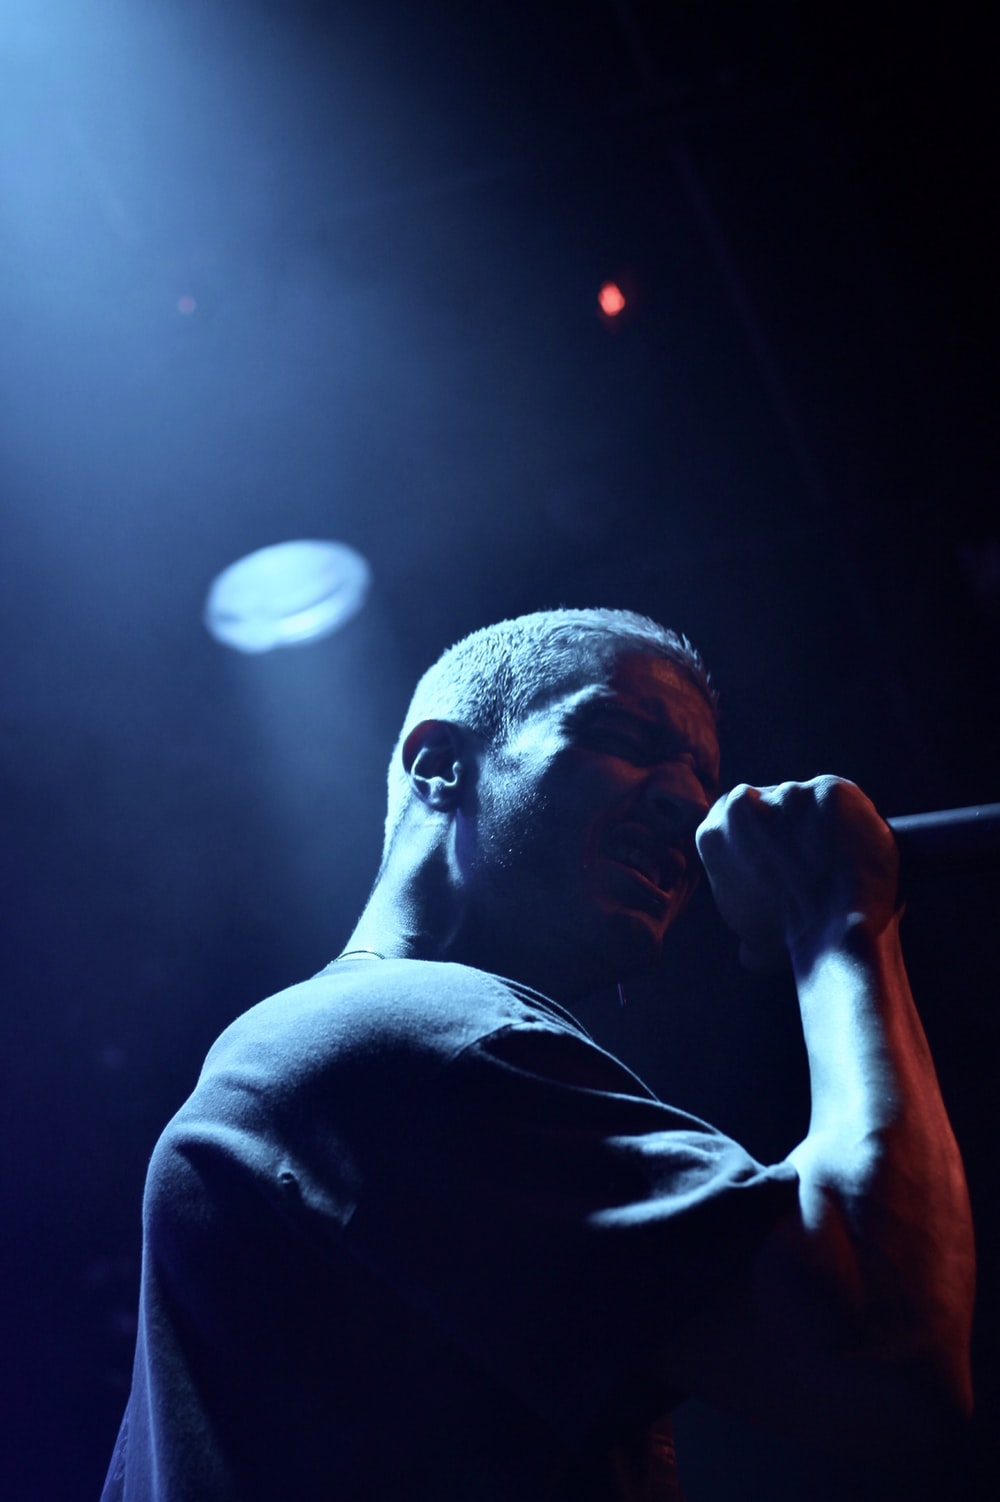 man holding microphone performing on stage